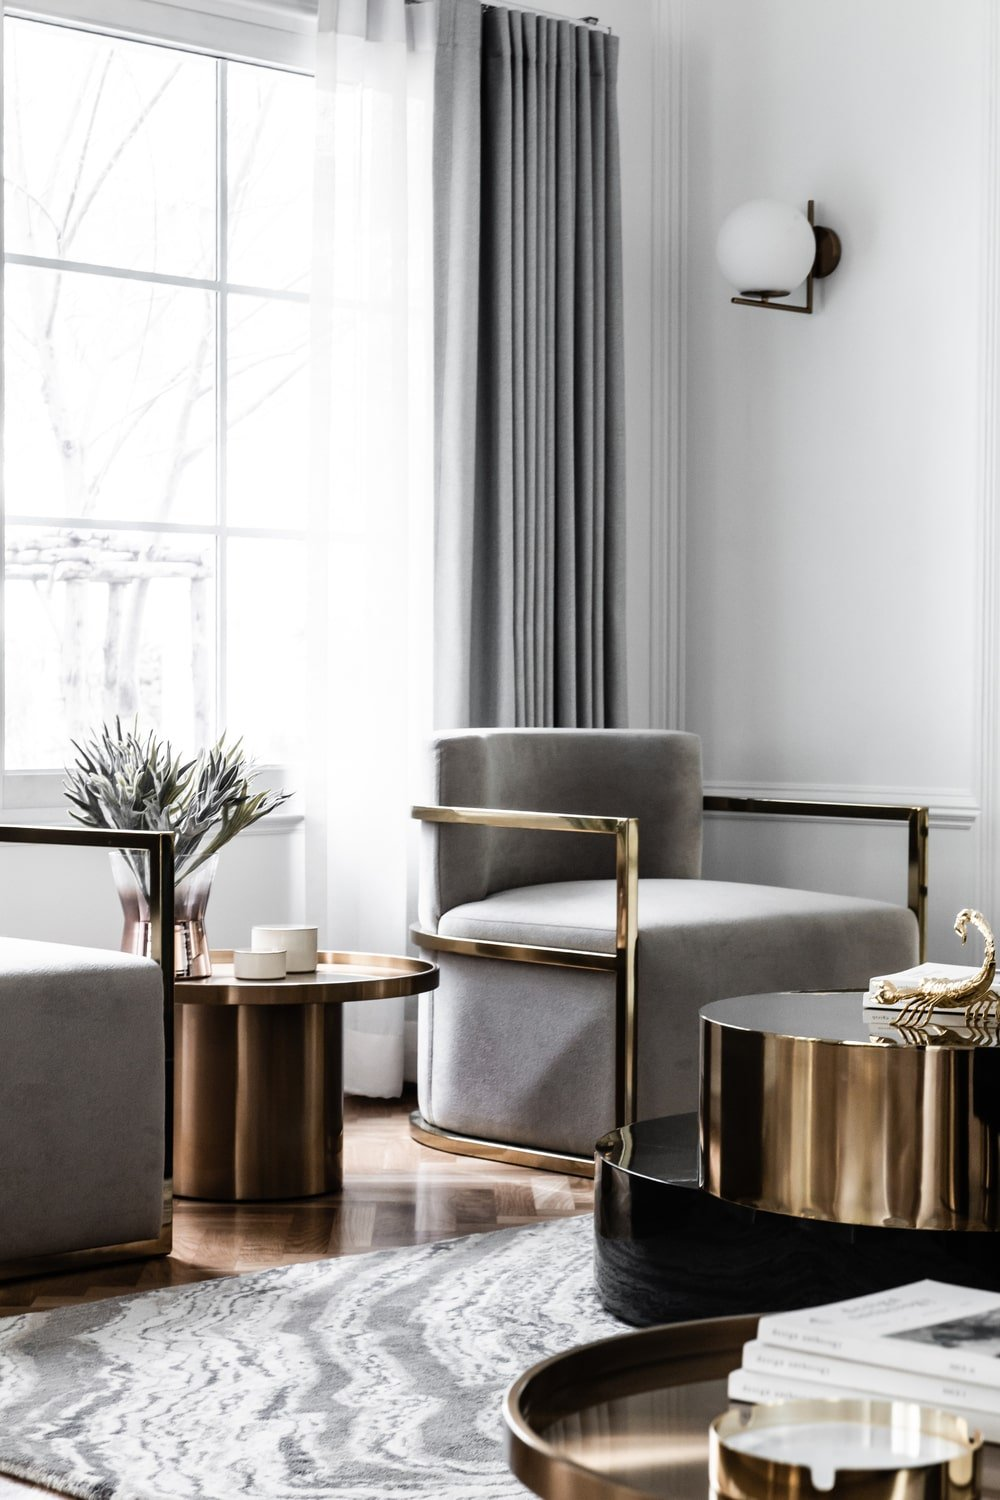 The two cushioned arm chairs across from the sofa has shiny metallic frames paired with a small round side table.